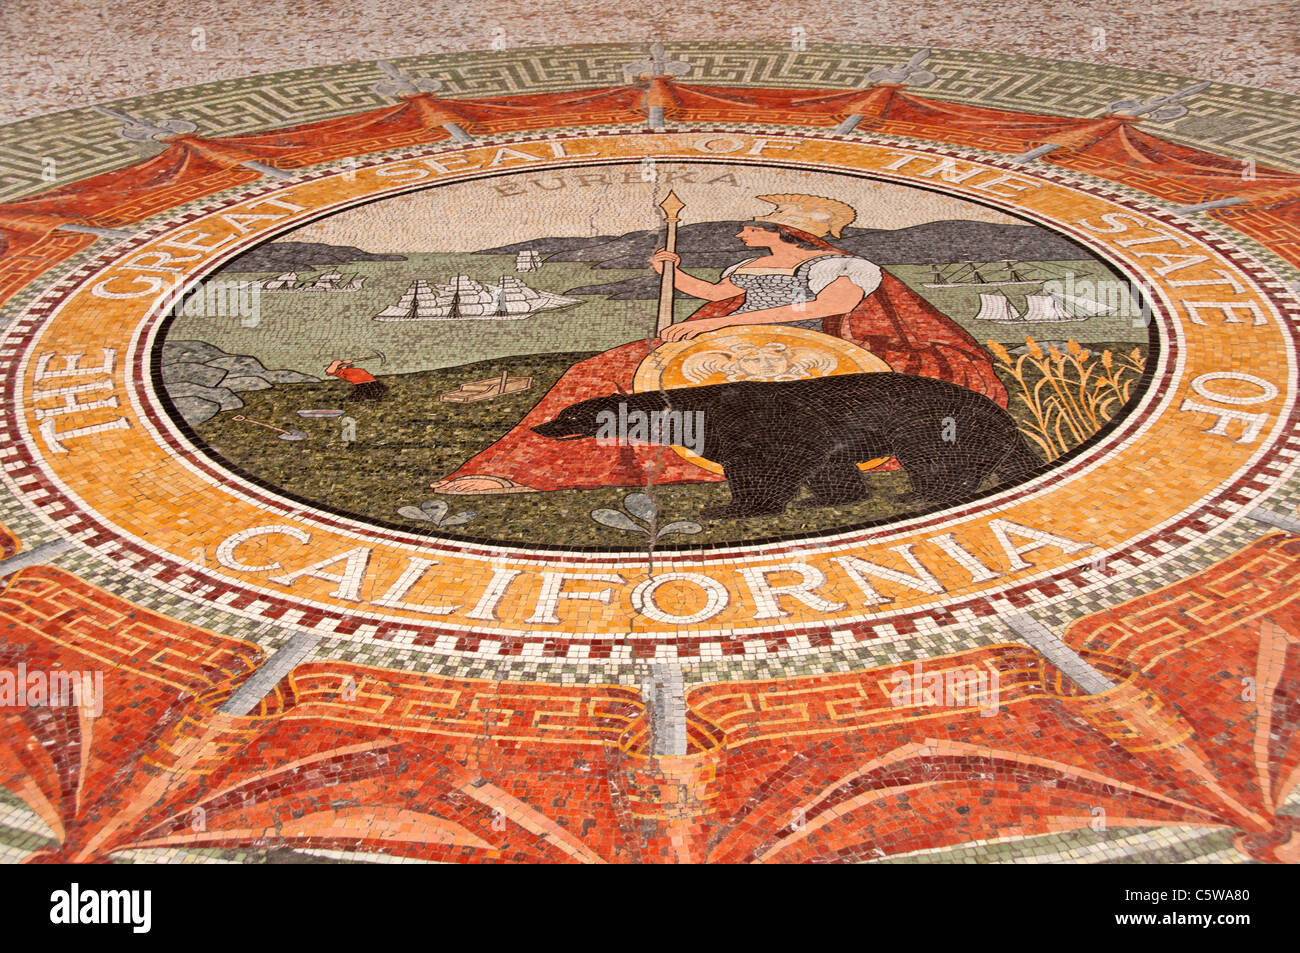 The Great Seal of the State of California on the floor of the mezzanine, Ferry Building, San Francisco, California - Stock Image